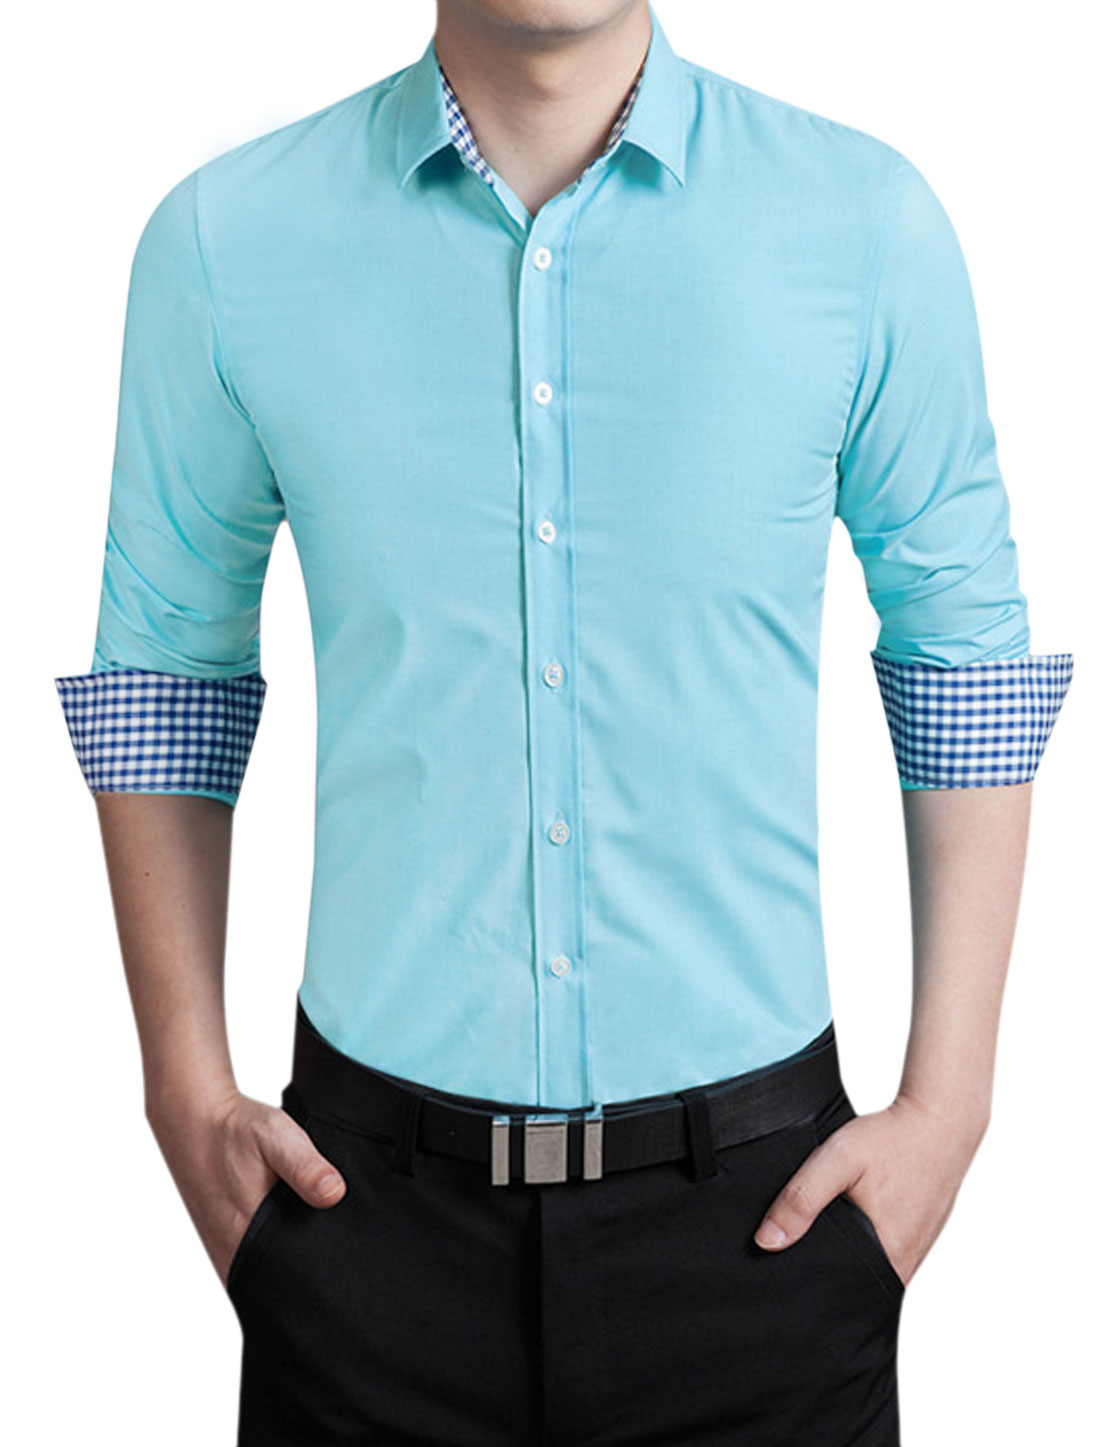 Men Long Sleeves Round Hem Button Closure Shirt Light Blue M